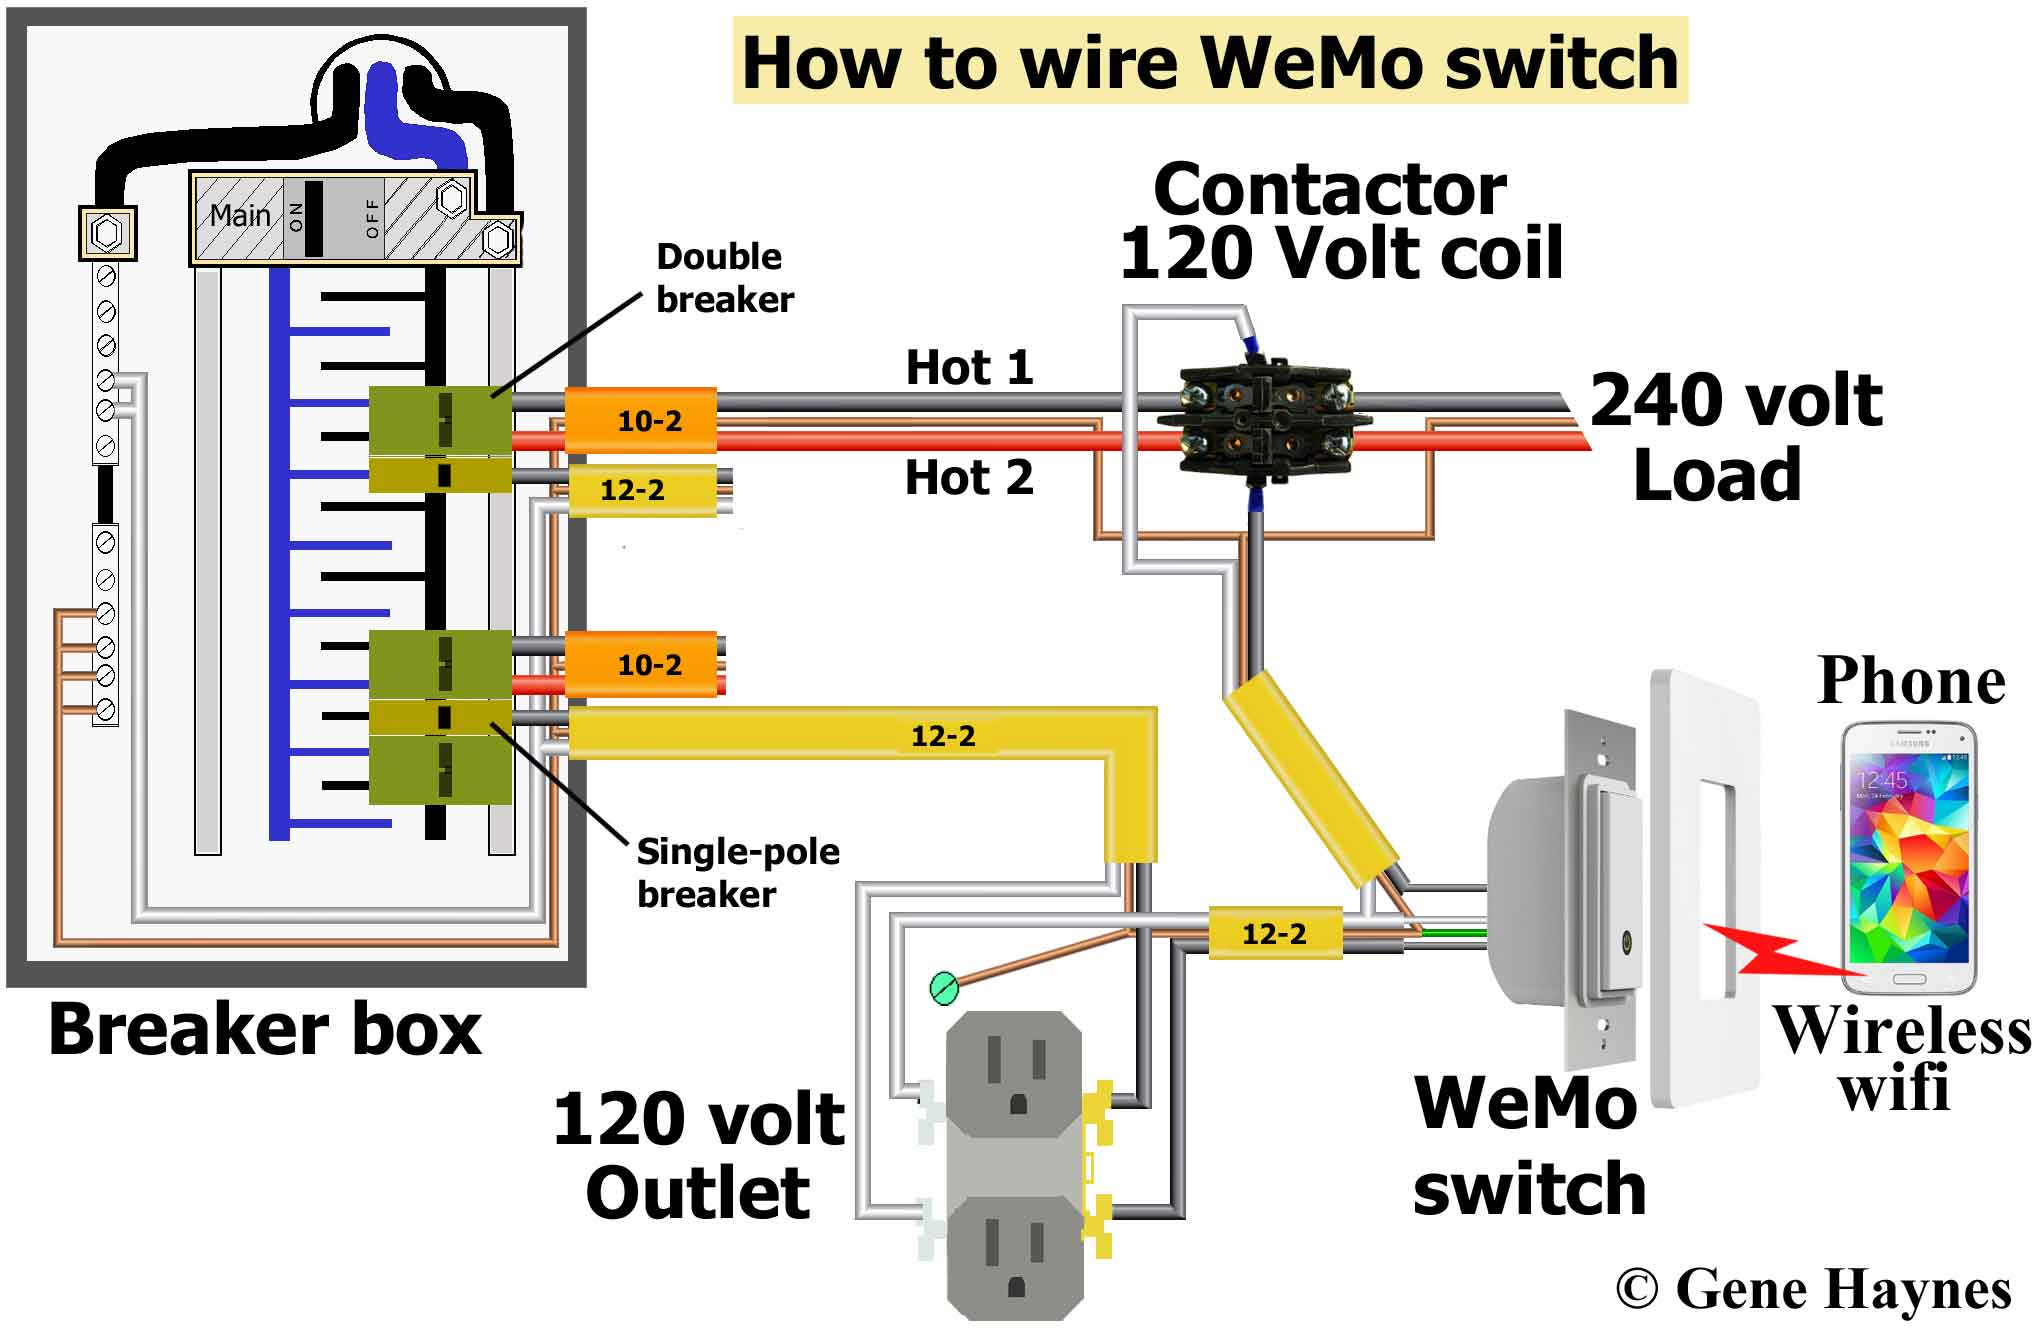 WeMo switch wiring illustration 3 how to wire on delay timer icm102 wiring diagram at panicattacktreatment.co